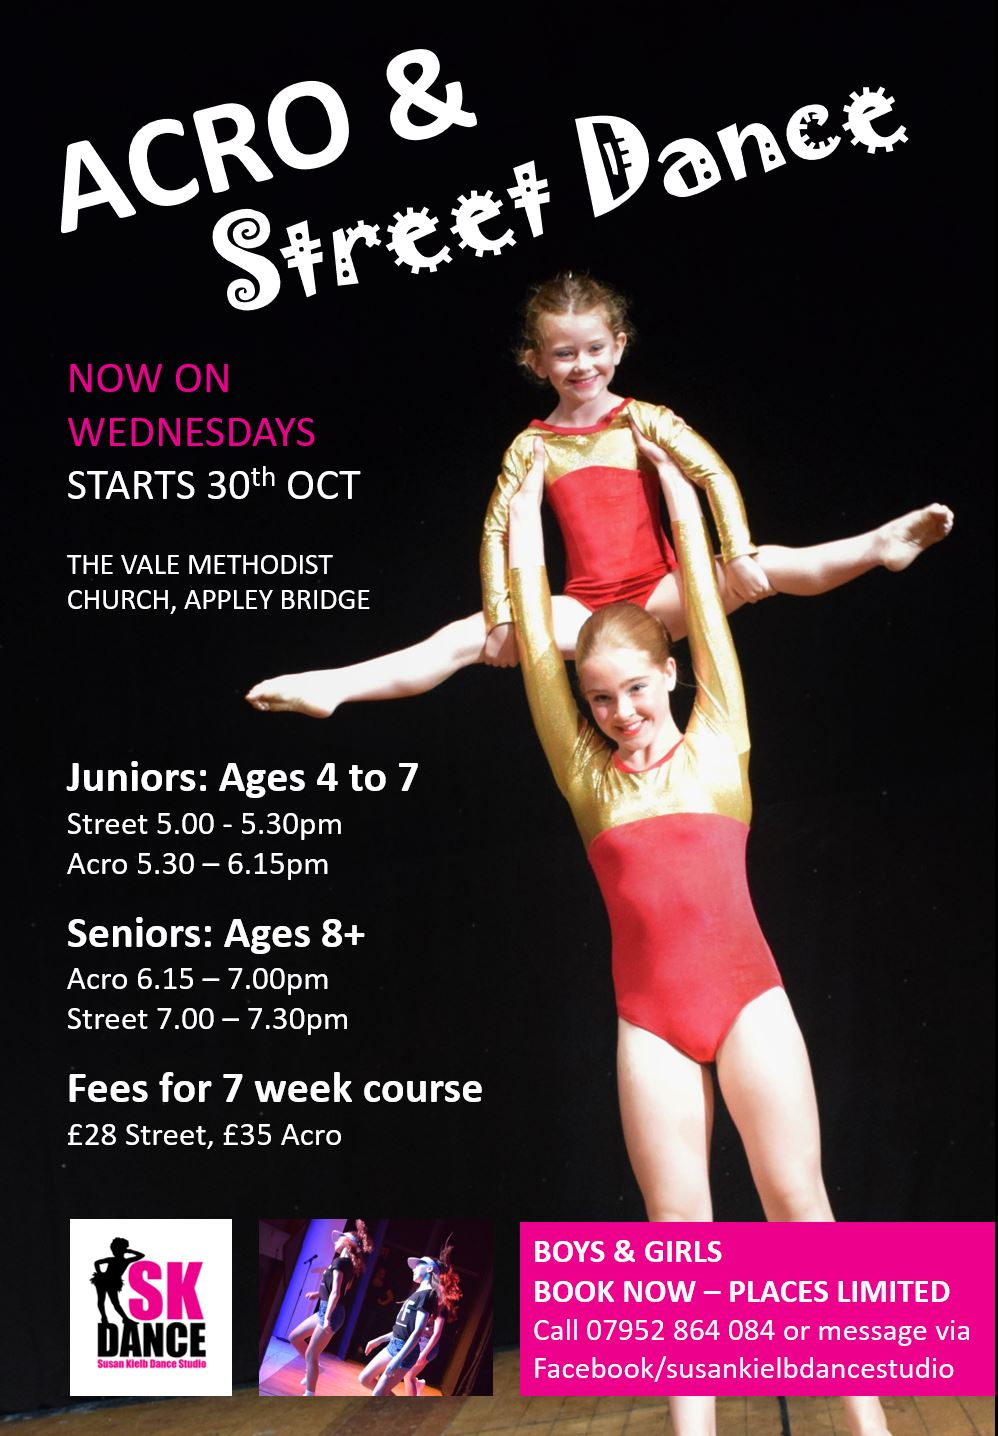 Acro and street dance classes for kids of all ages at SK Dance Studio, Wigan